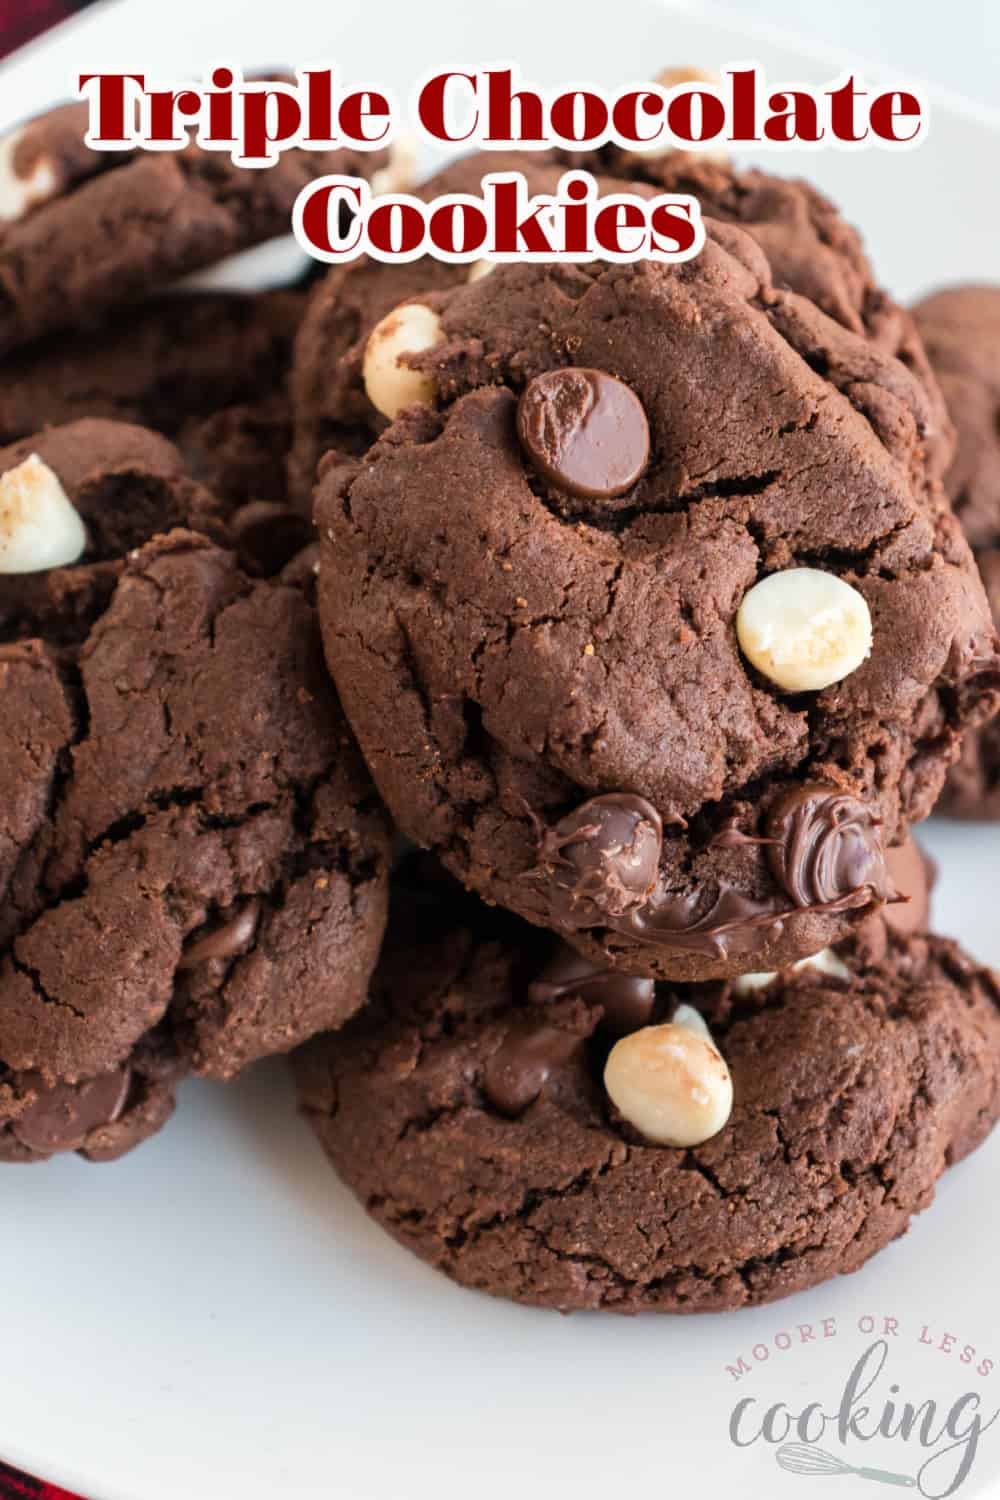 For a serious serving of chocolate, you'll want to make these outrageously rich and decadent Triple Chocolate Cookies. Go ahead and indulge with this amazingly easy recipe that will most certainly become your new favorite! via @Mooreorlesscook